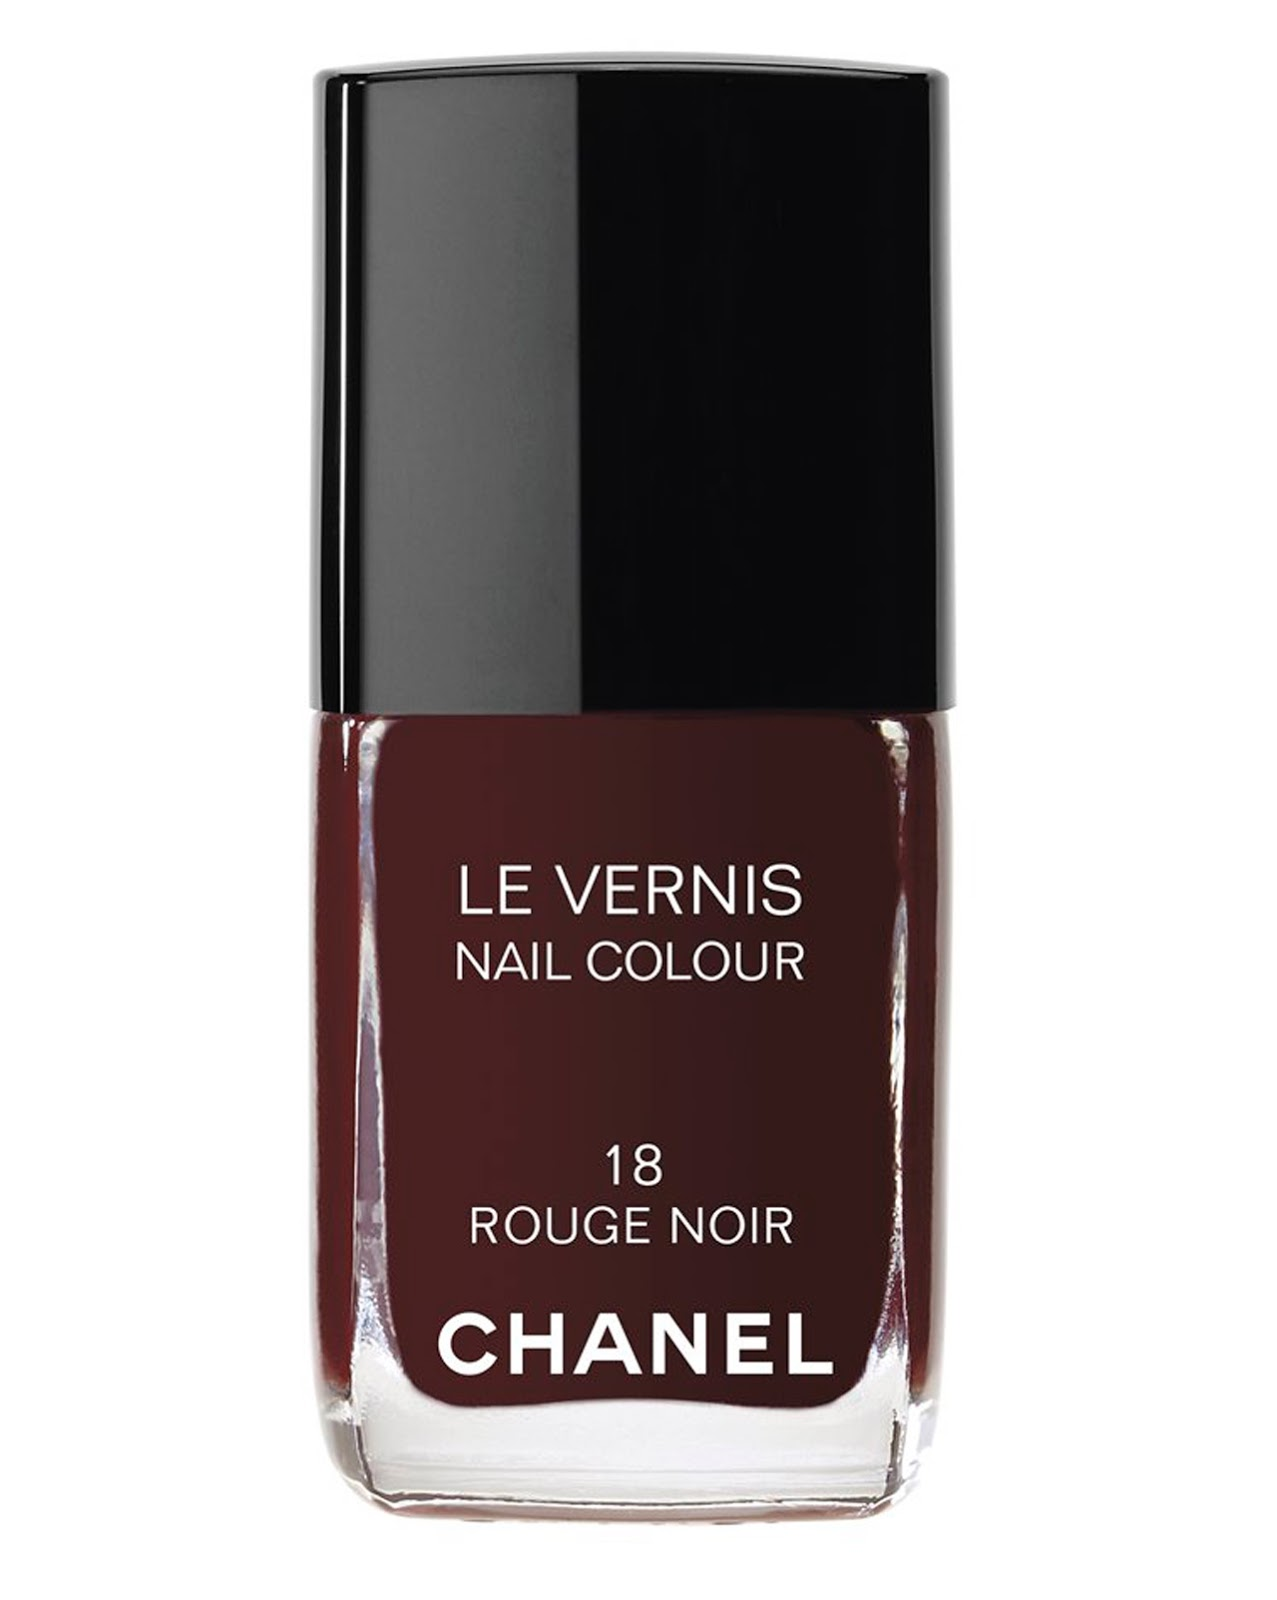 new chanel le vernis nail polish colour rouge noir 18 13 ml 0 4 fl oz ebay. Black Bedroom Furniture Sets. Home Design Ideas